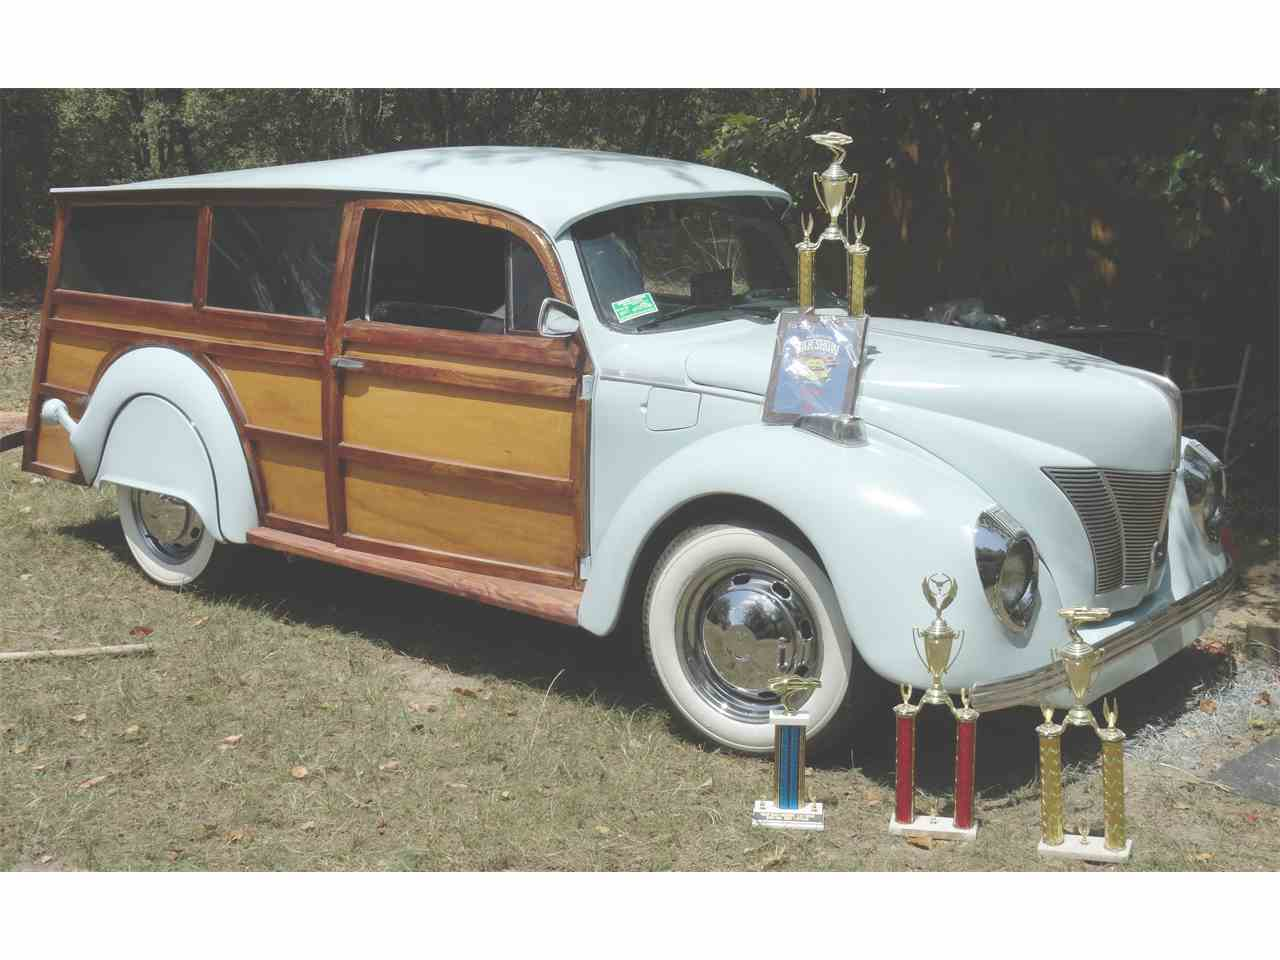 Large Picture of Classic 1973 Volkswagen Woody Wagon - $14,500.00 Offered by a Private Seller - FTHJ